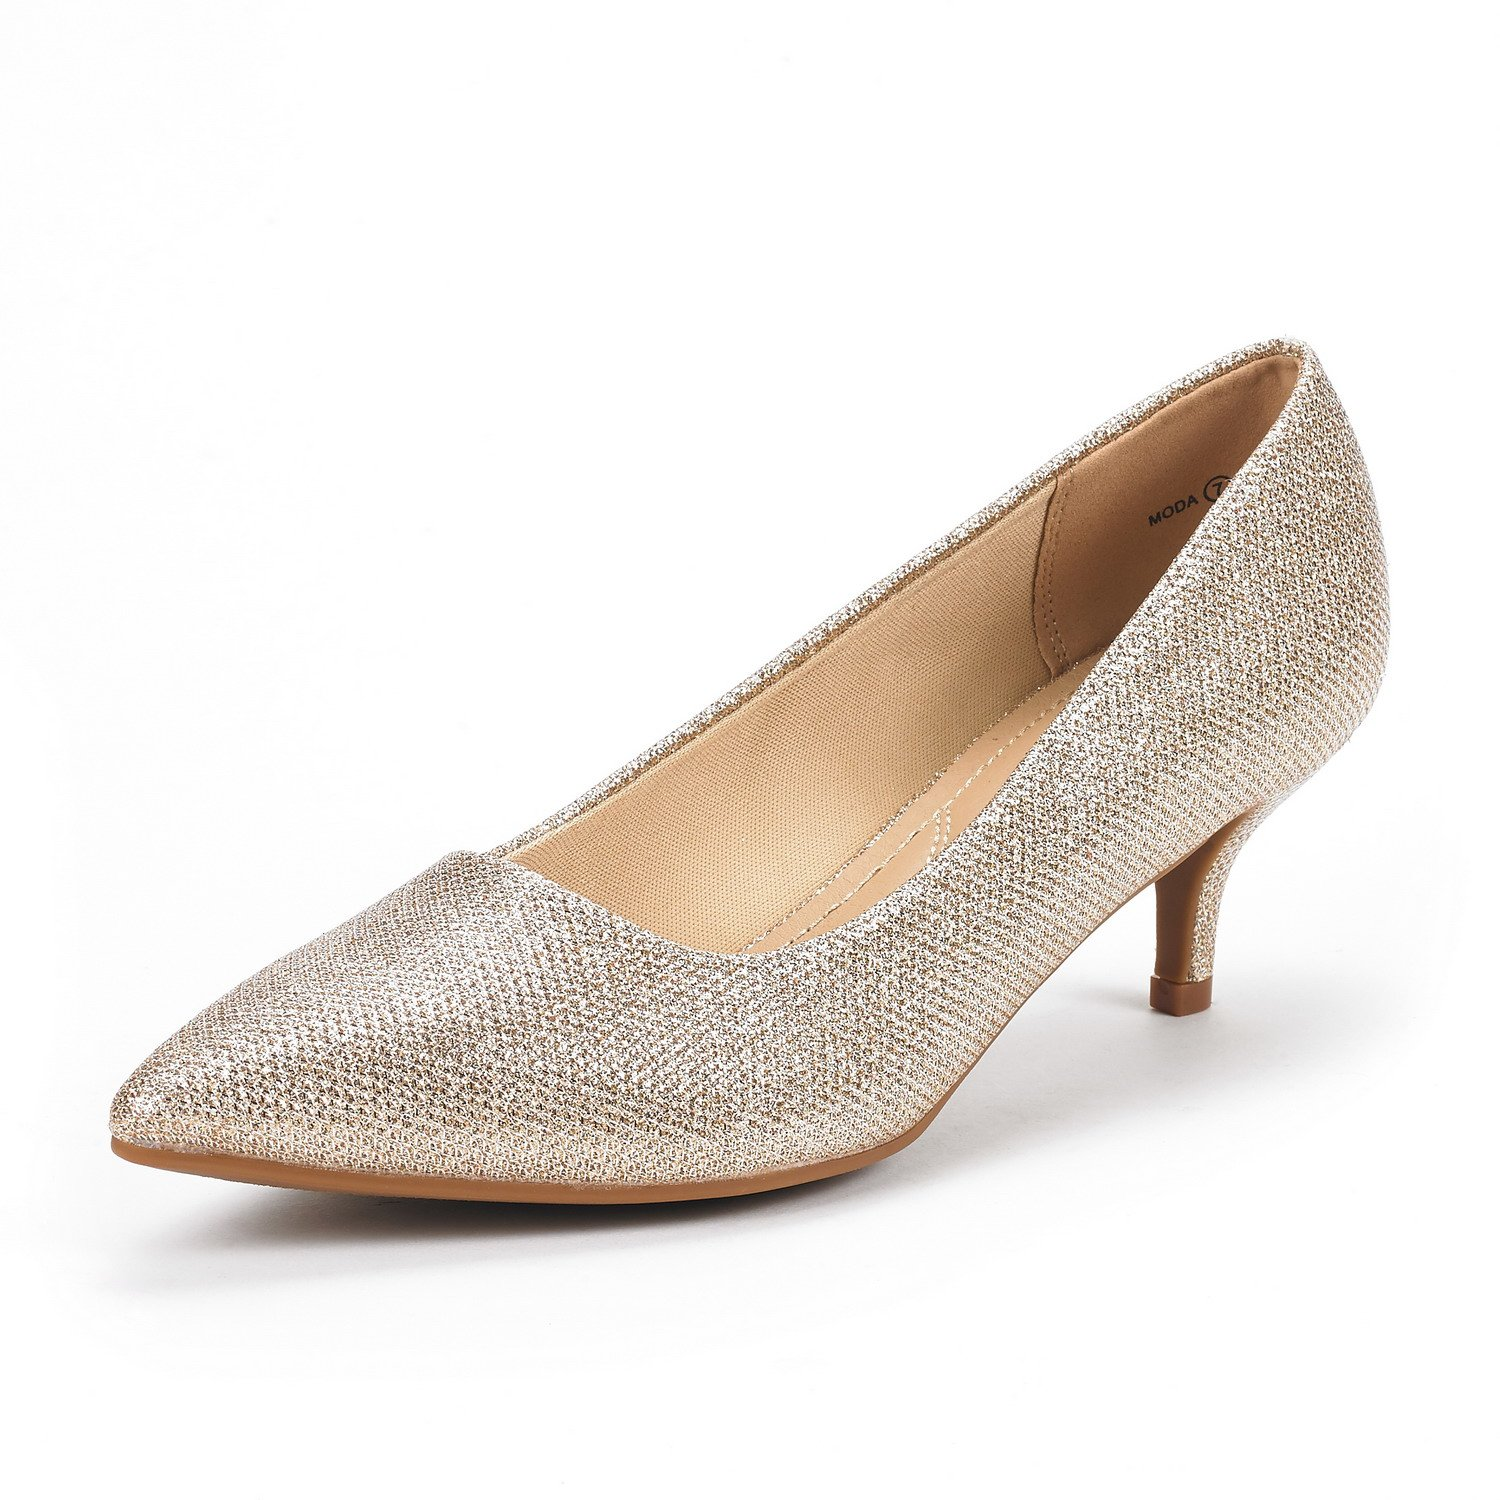 DREAM PAIRS Women's Moda Gold Glitter Low Heel D'Orsay Pointed Toe Pump Shoes Size 7.5 M US